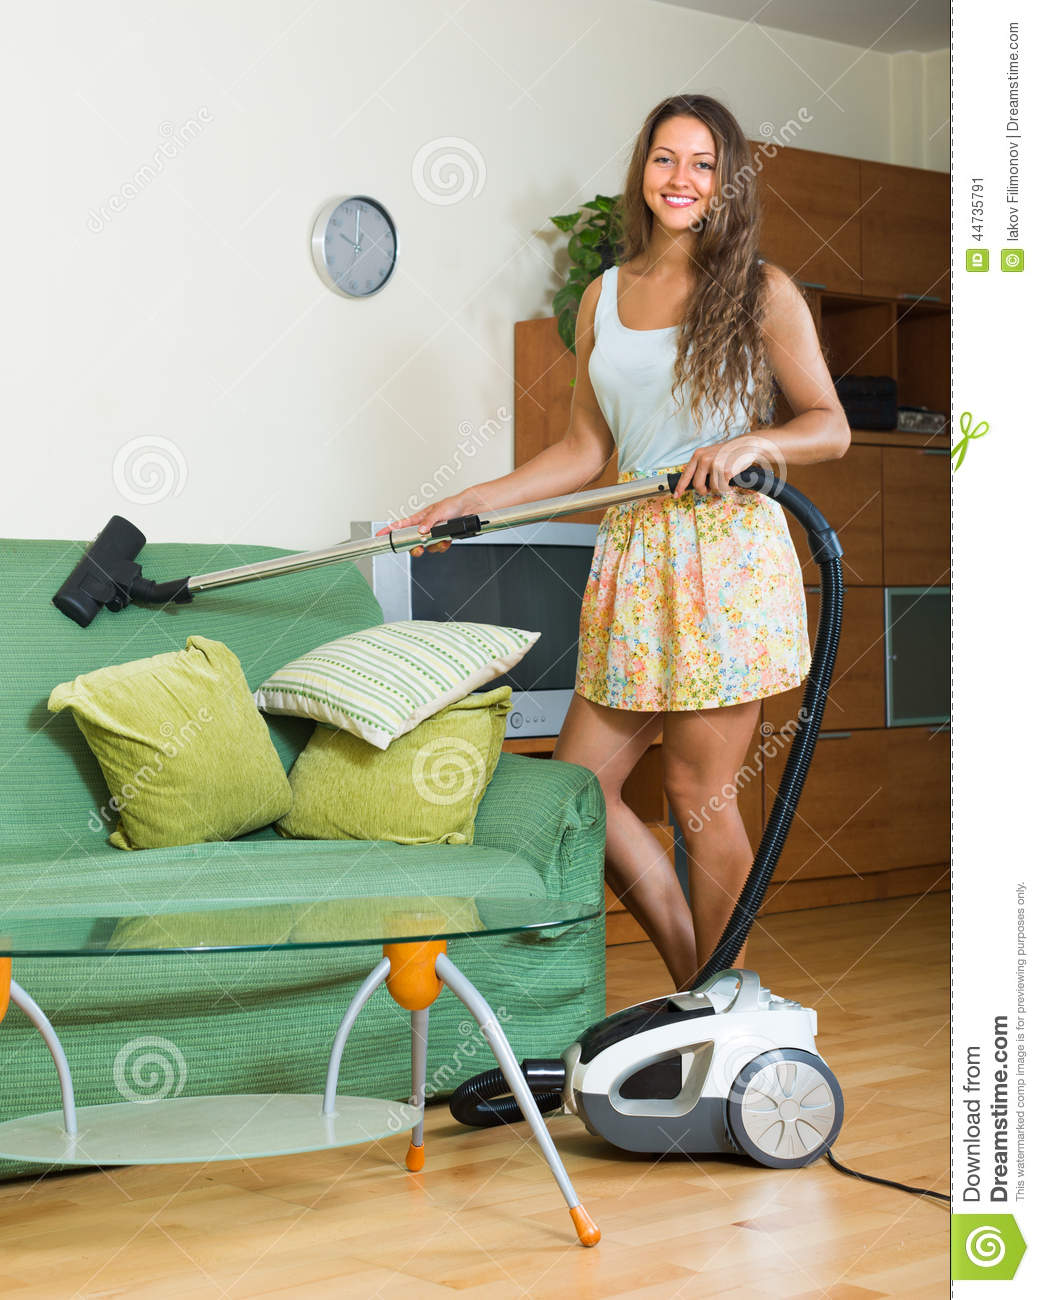 Woman Vacuuming Living Room Stock Image Image Of Interior Adult